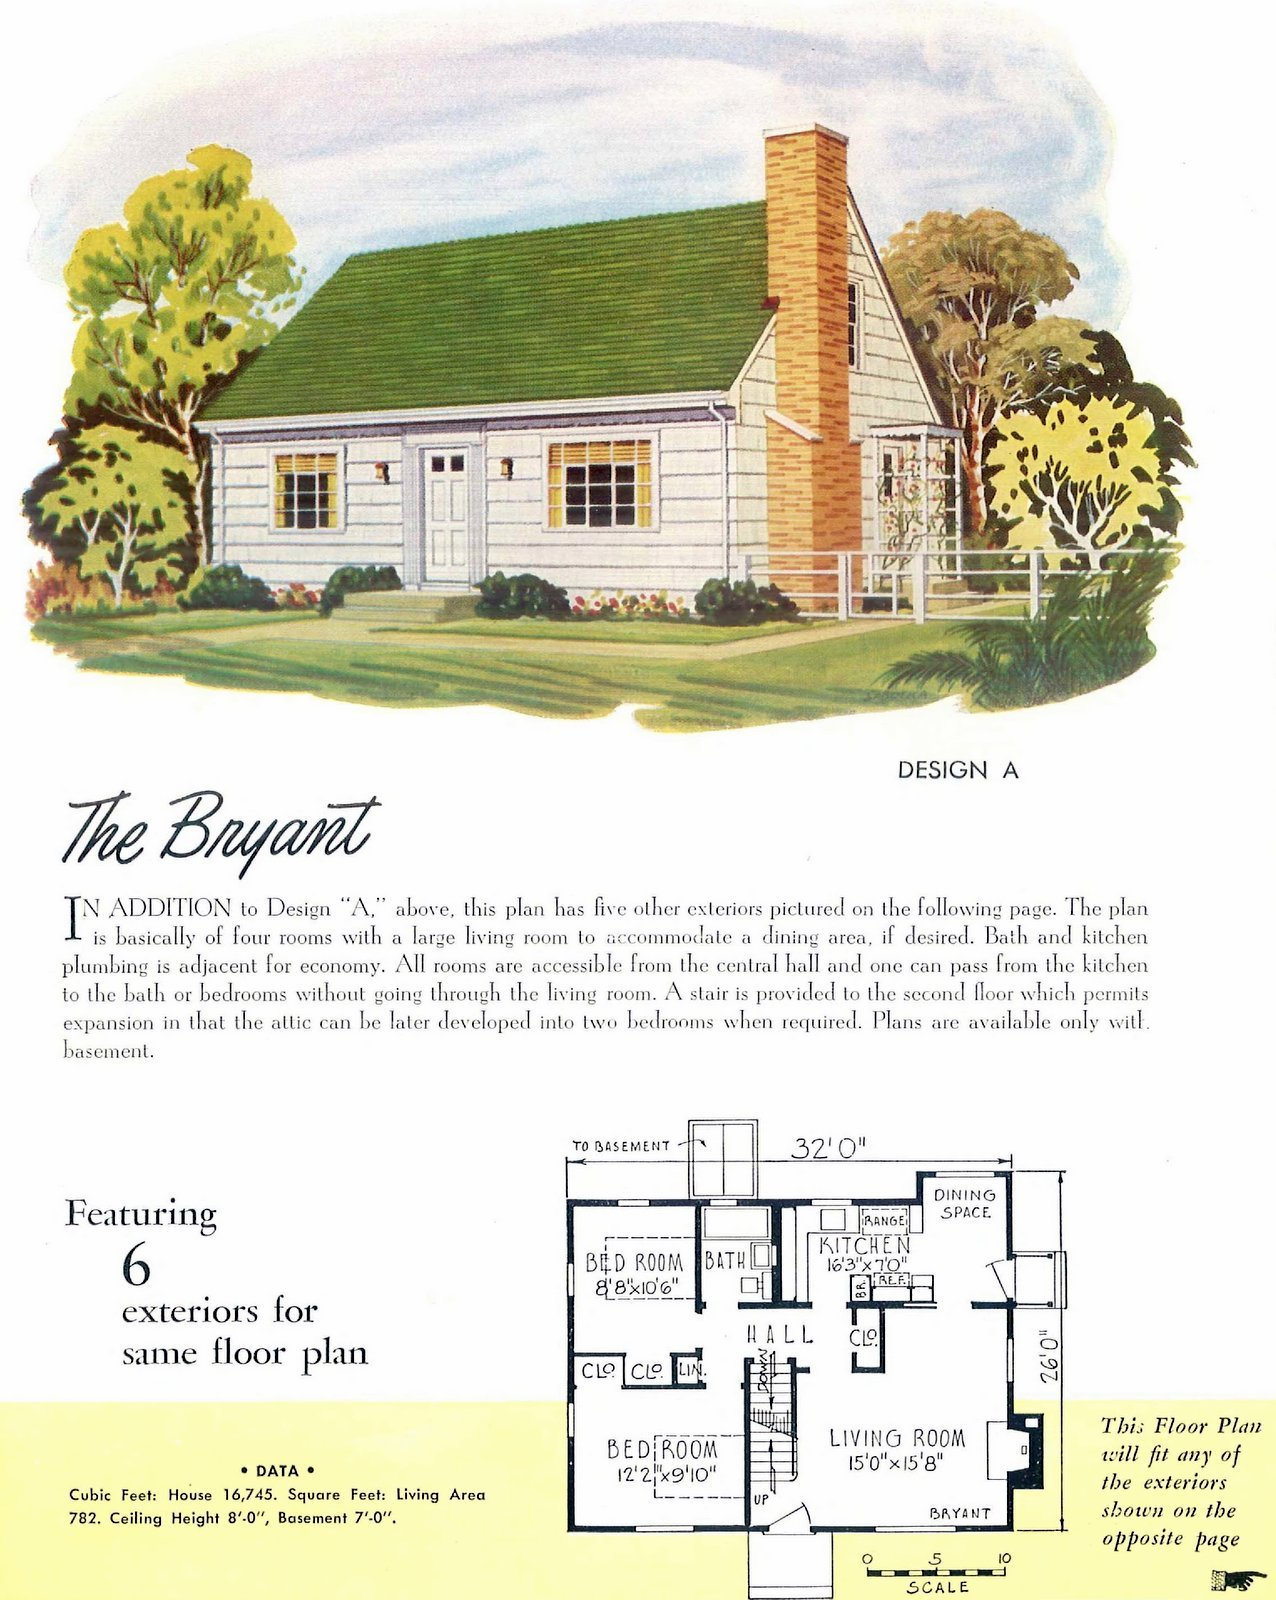 Low-cost small midcentury home plans from 1952 (2)